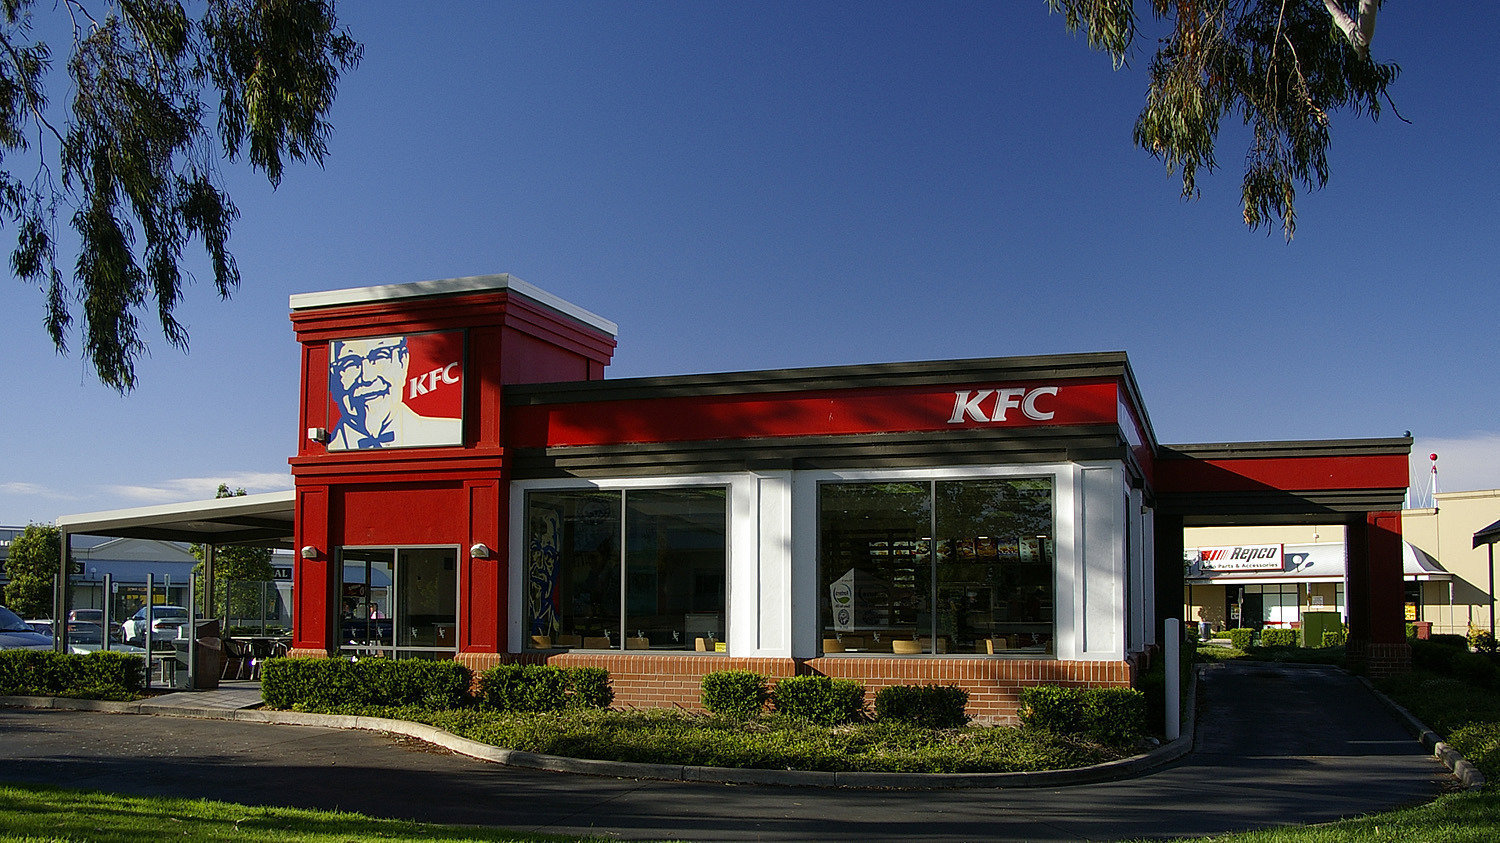 Petition · Kfc , Kfc Ceo Muktesh Pant: Offer vegan food · Change.org